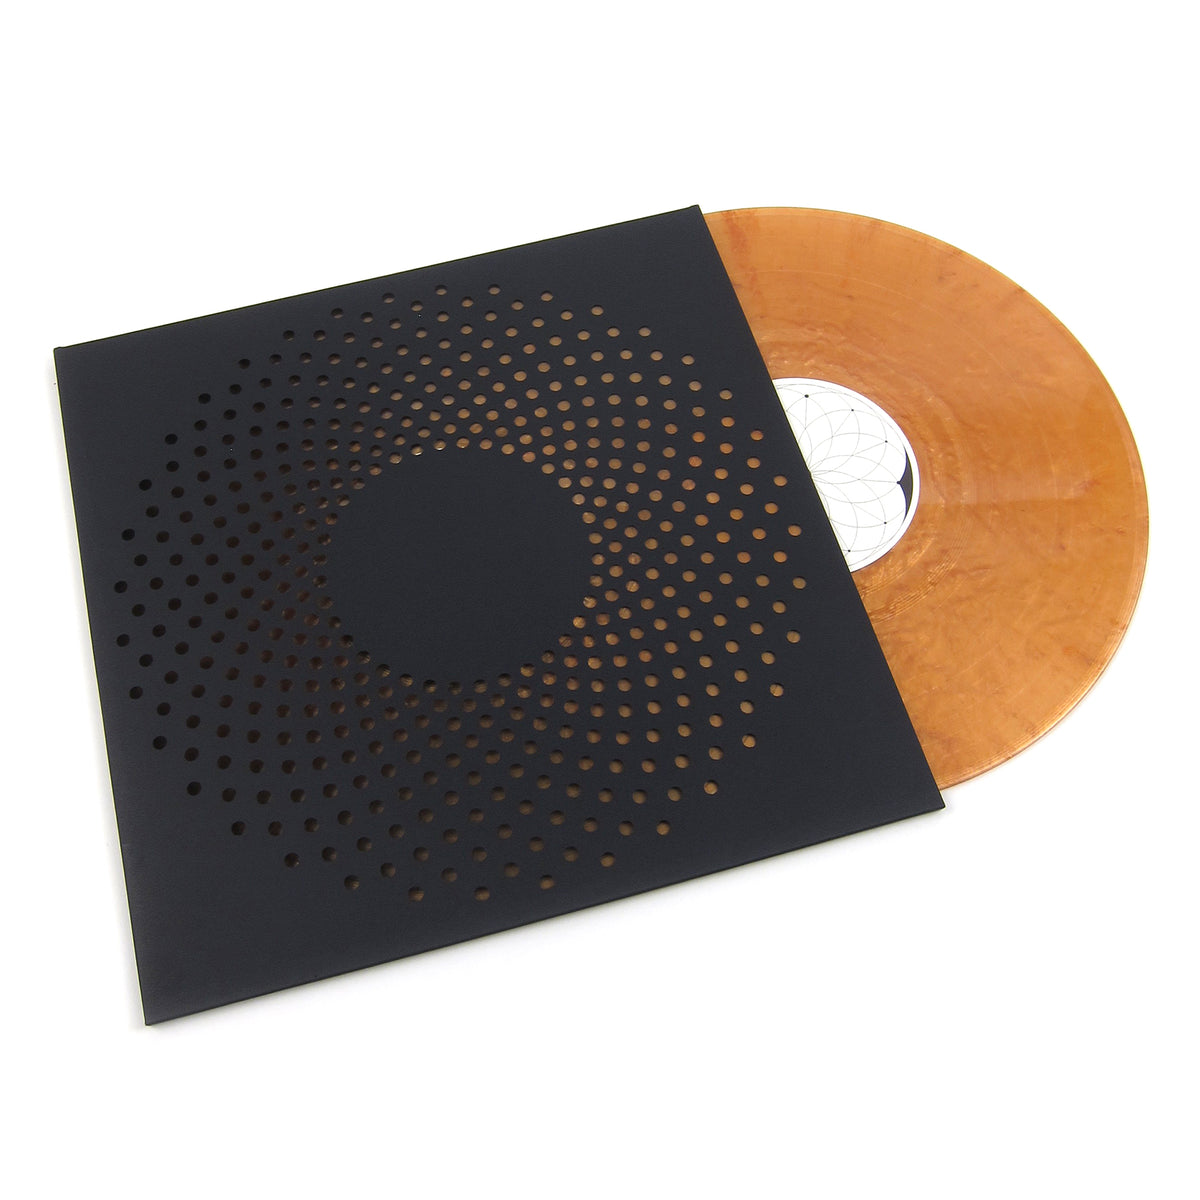 Serato: Sacred Geometry - Origin (Serato Control Vinyl, Colored Vinyl) Vinyl 2LP